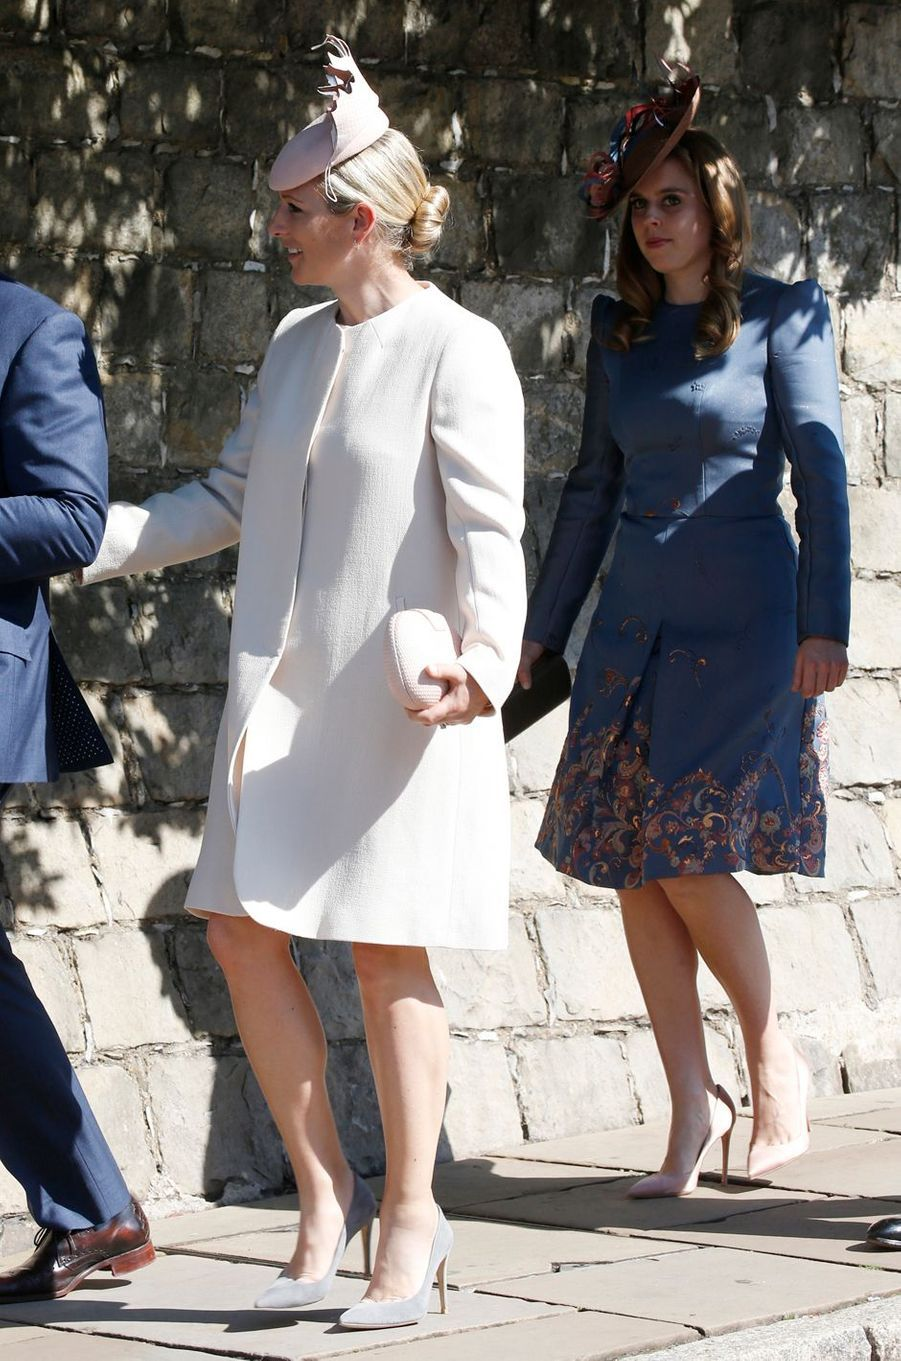 Zara Phillips et la princesse Beatrice d'York à Windsor, le 21 avril 2019